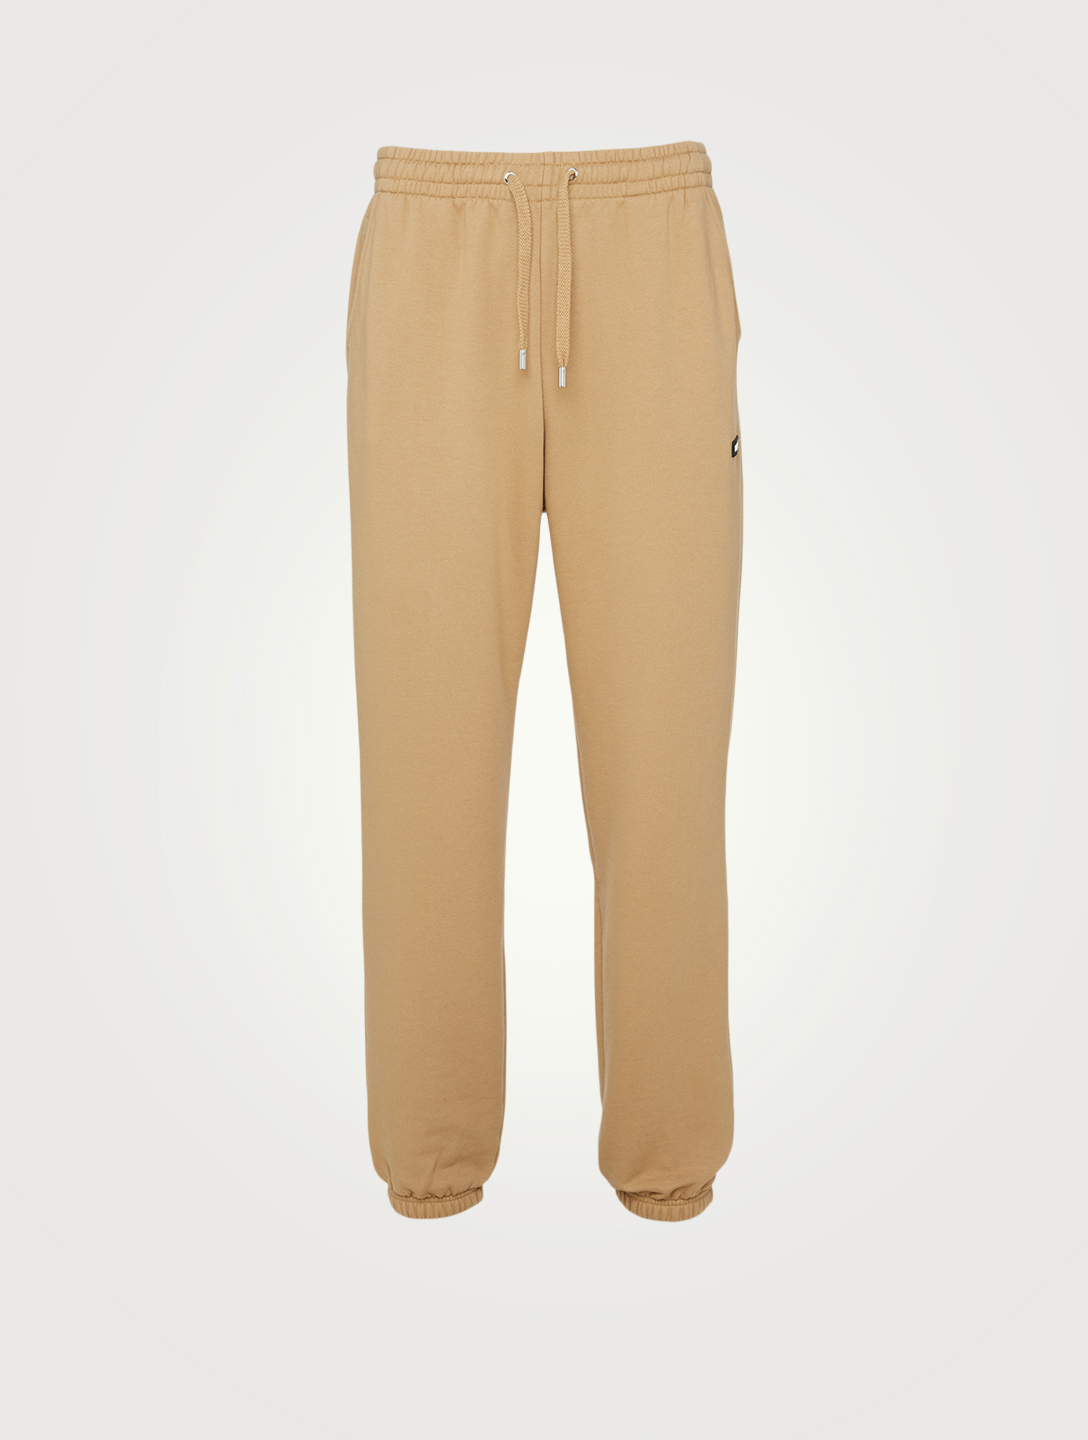 MACKAGE Presley Fleece Jersey Pants Men's Beige